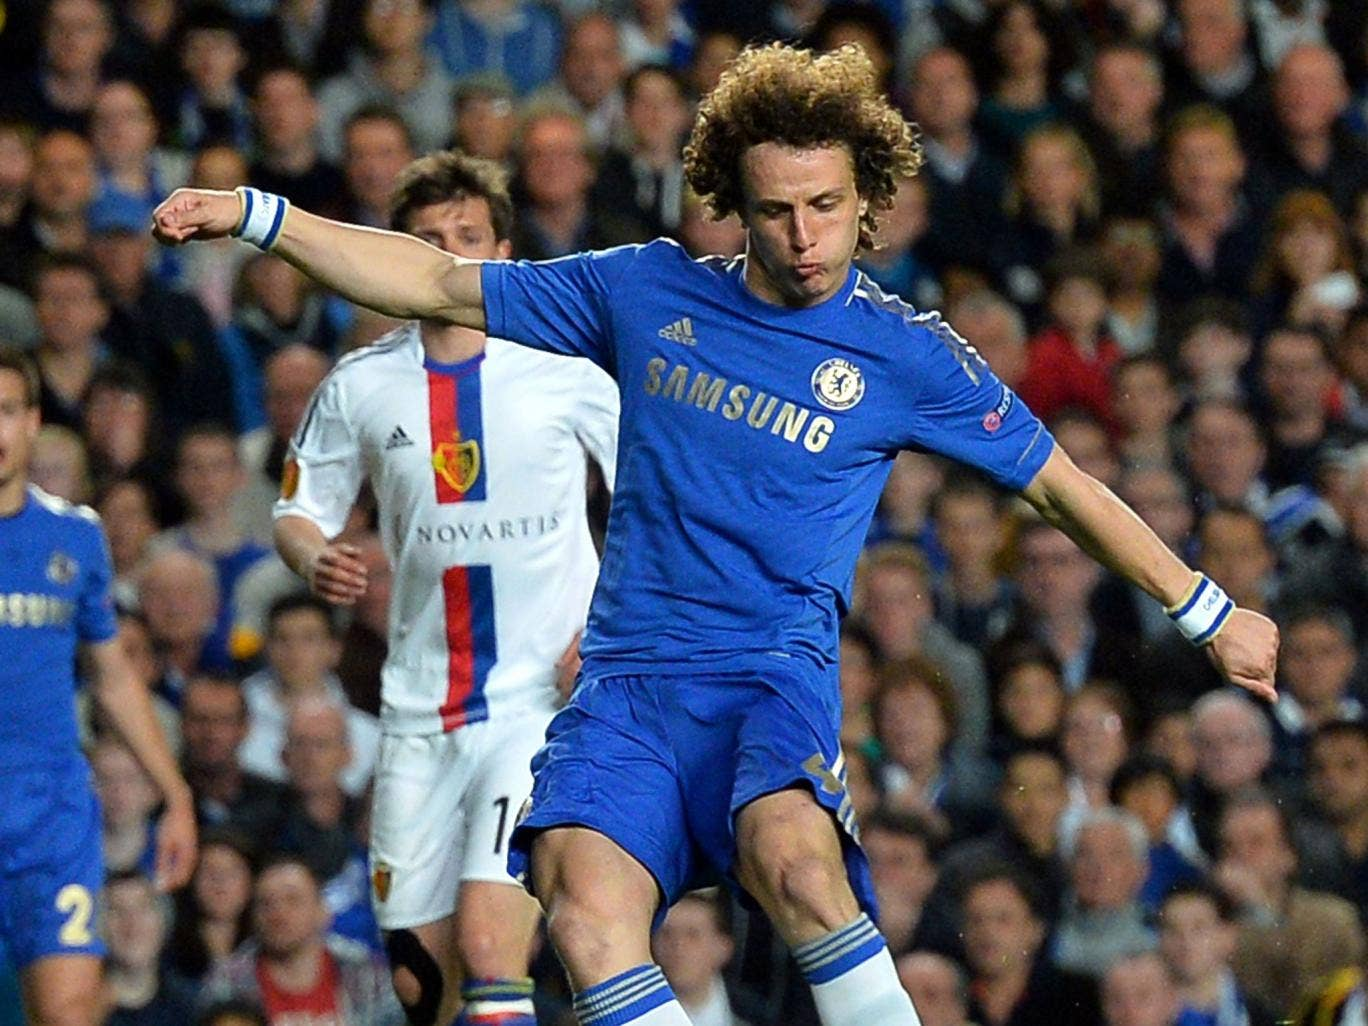 David Luiz hits another impressive goal for Chelsea at Stamford Bridge